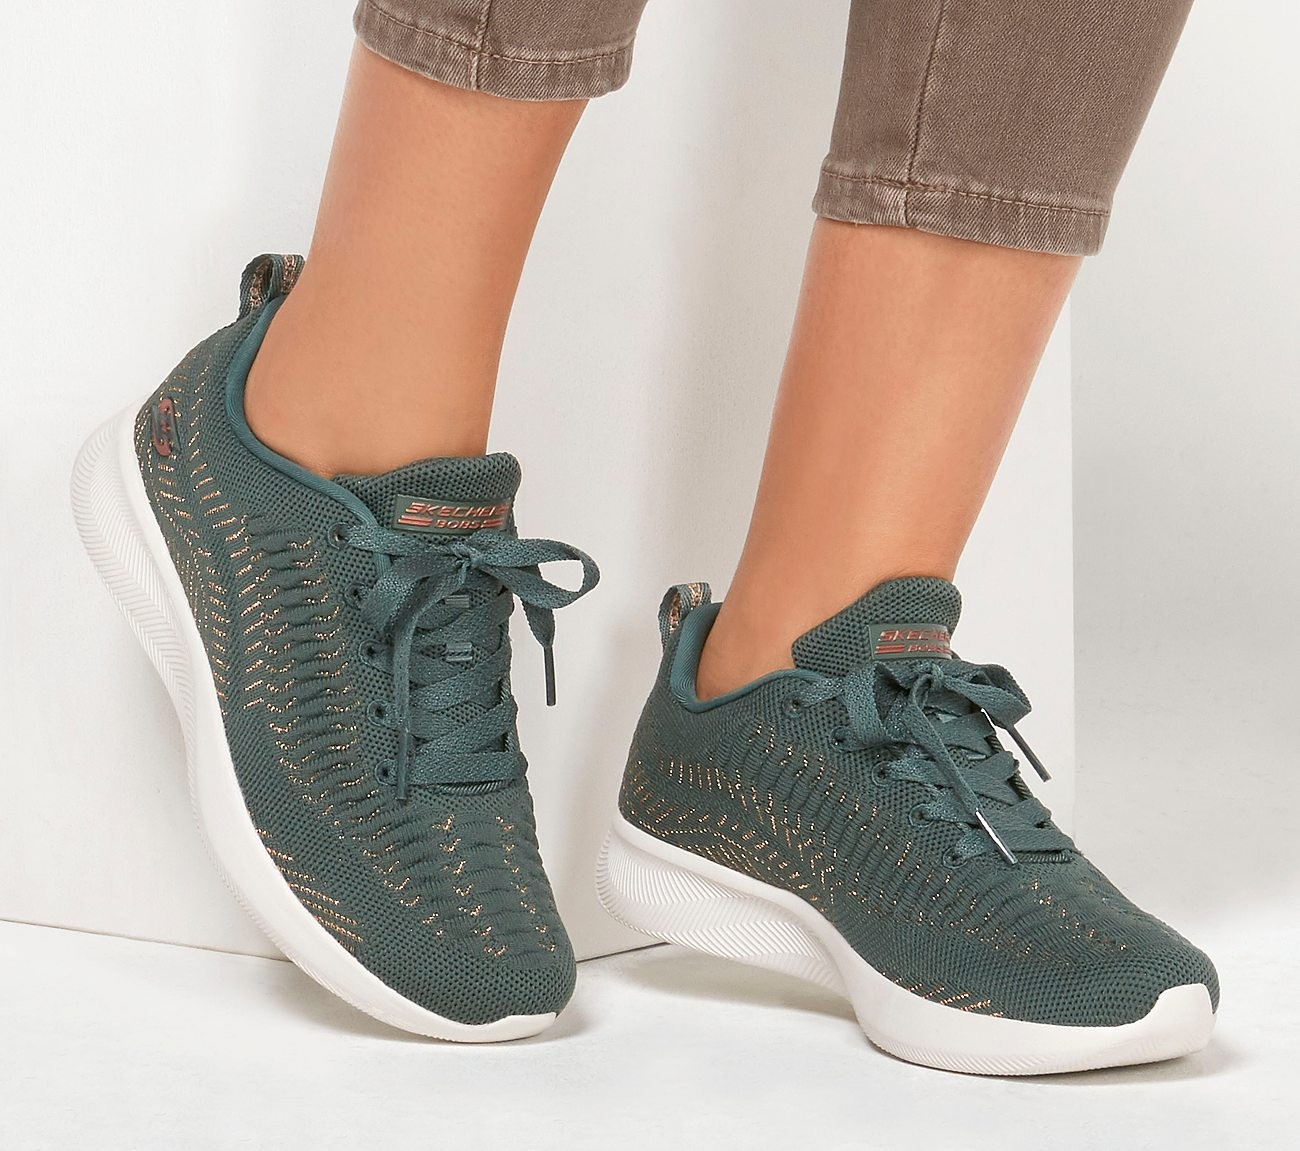 skechers shoes official site, Skechers Casual, Sport & Dress